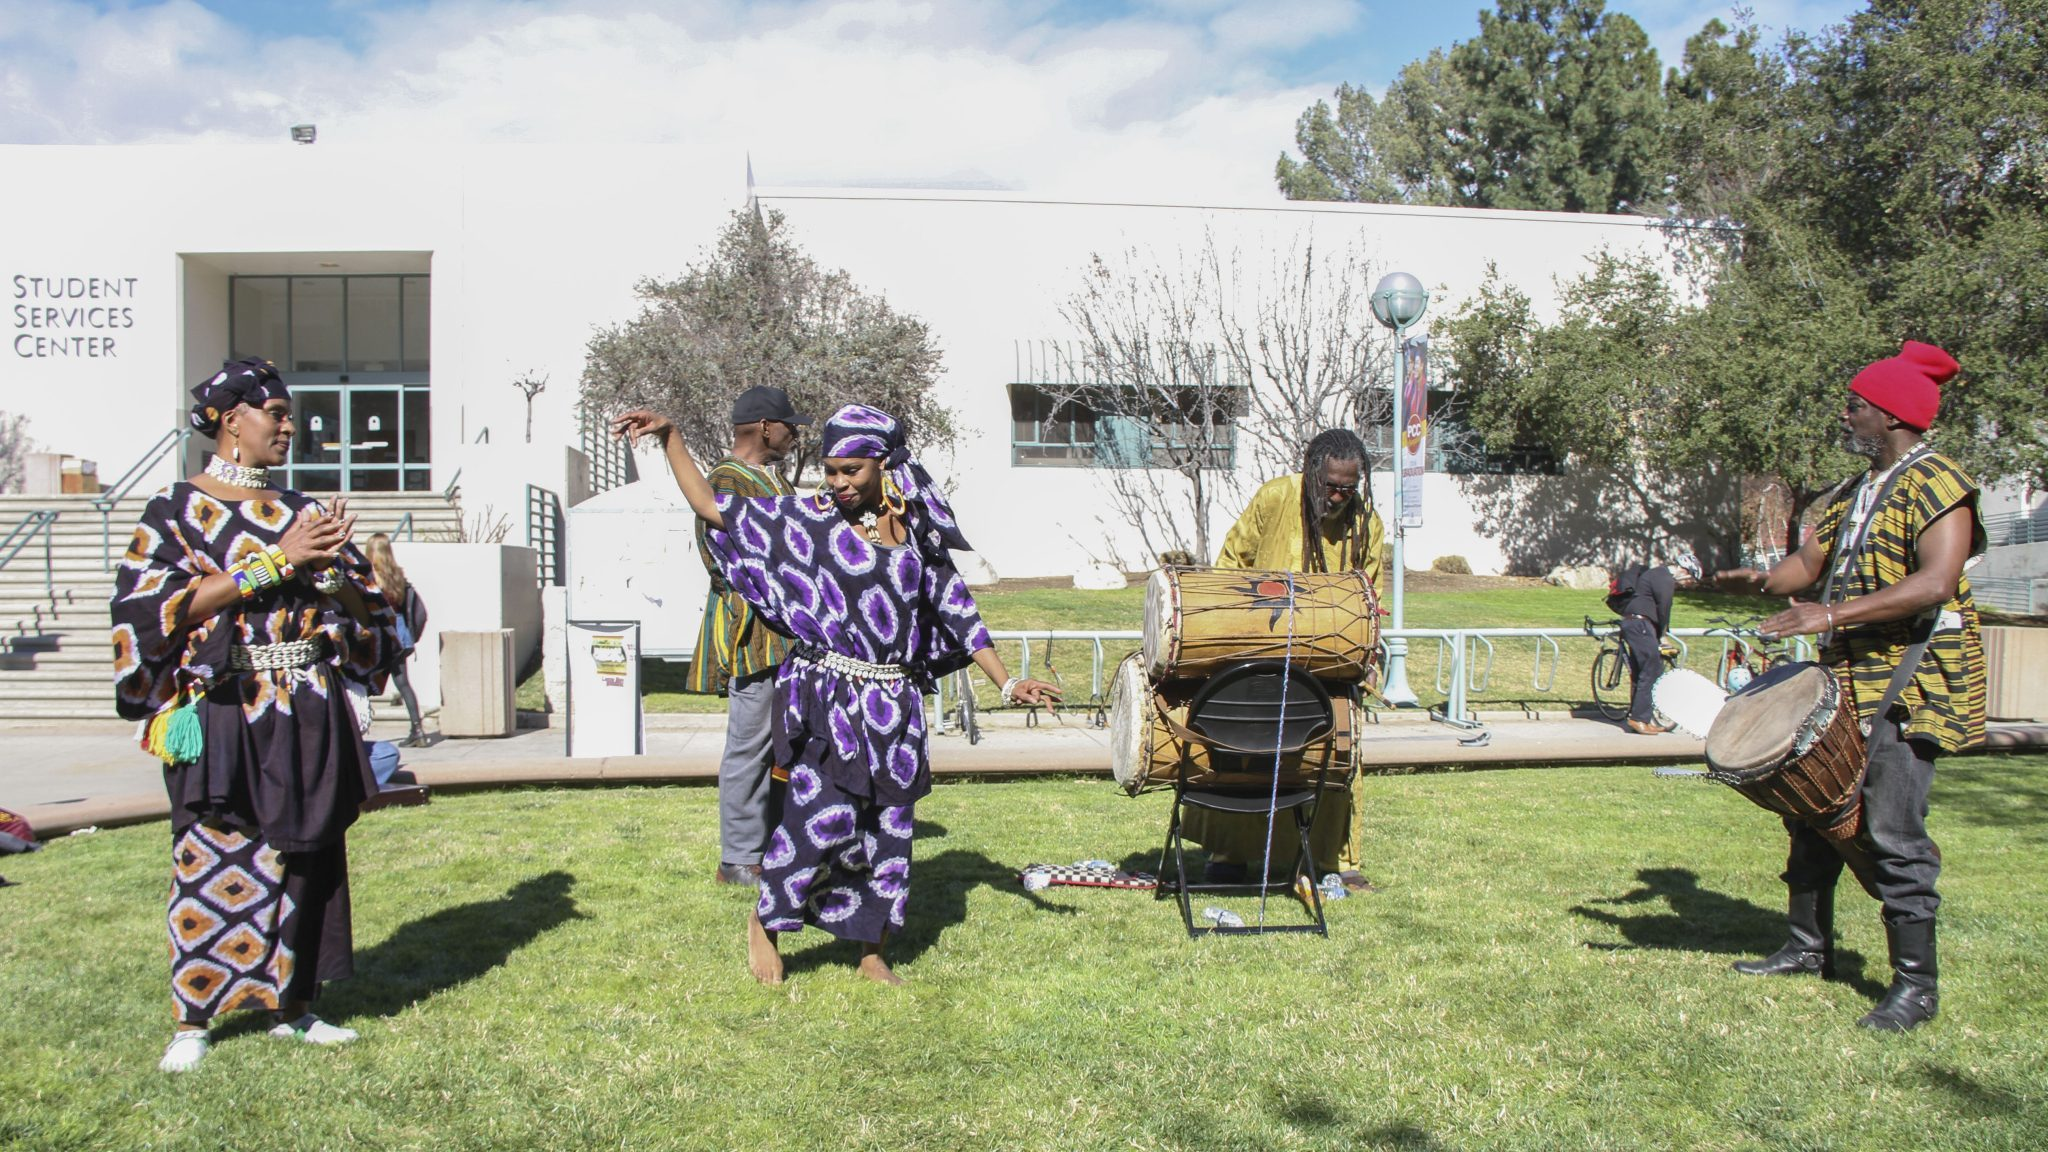 Eric Haynes/Courier - Kabasa dancer Teresa Smith speaks to the crowd after the performance with the Kabasa drummers in the quad on Tuesday, February 2, 2016. The Kabasa African Drummers & Dancers were a part of the opening ceremony for the month-long celebration of African-American heritage at PCC, hosted by Ujima.